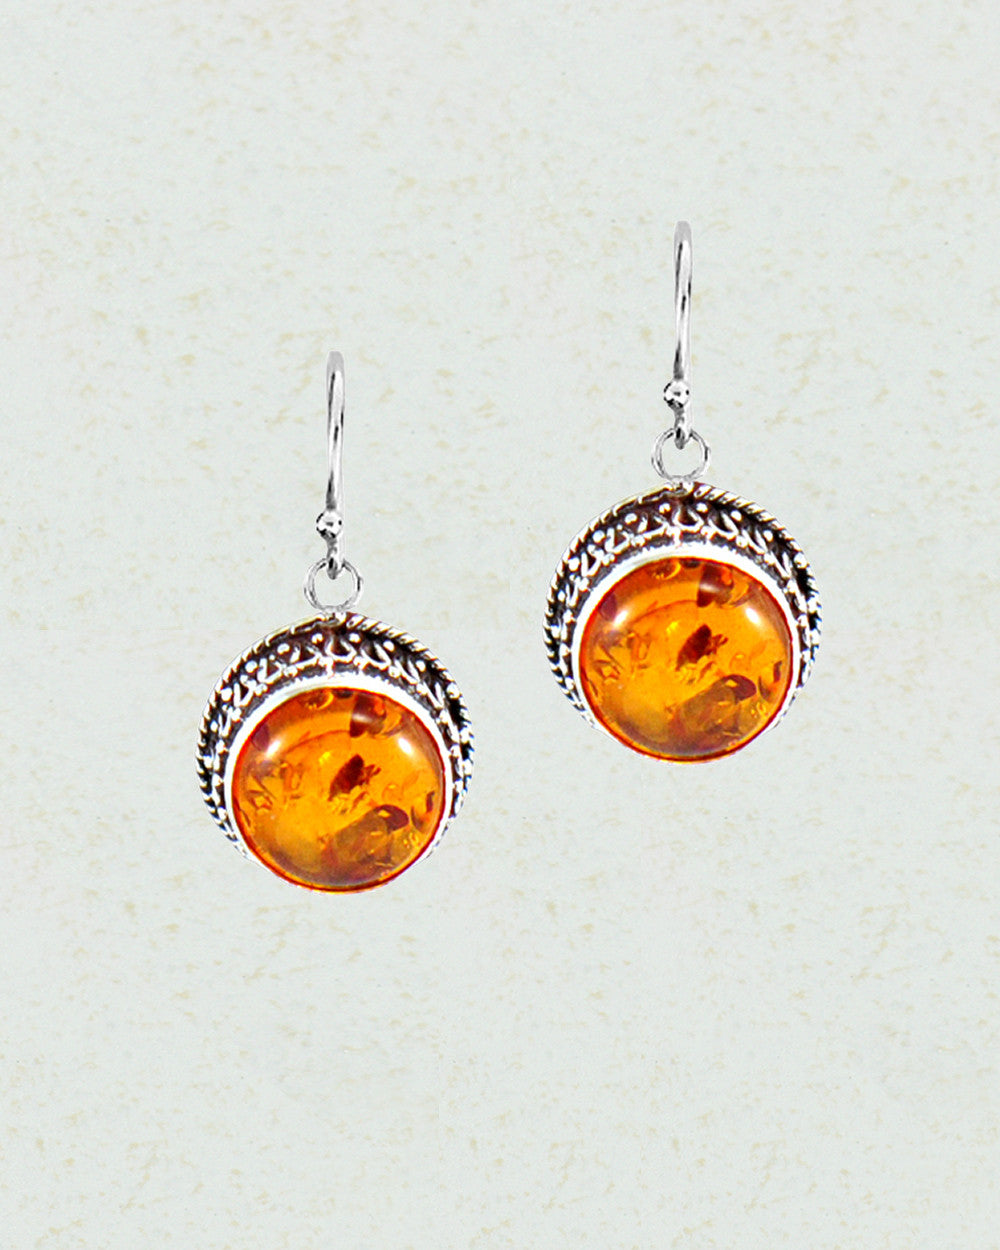 Baltic Amber Earrings in Sterling Silver - Sivalya